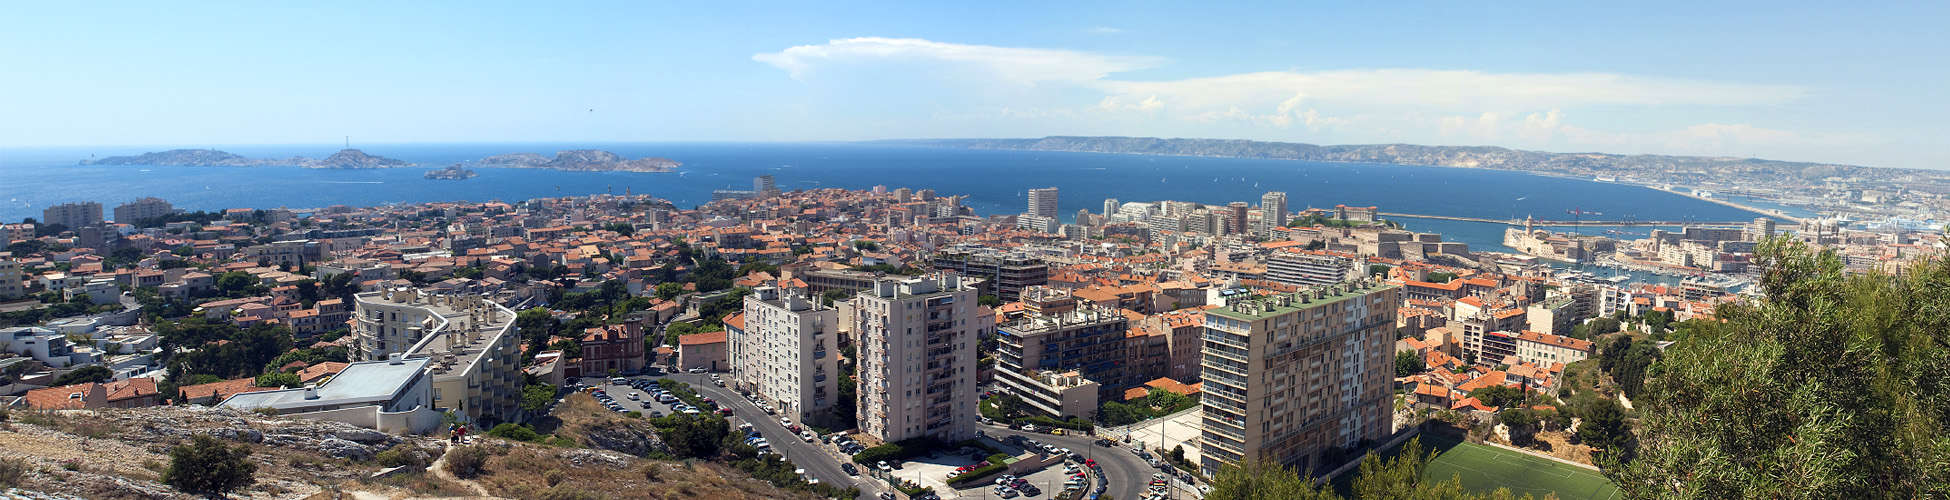 immobilier marseille projet